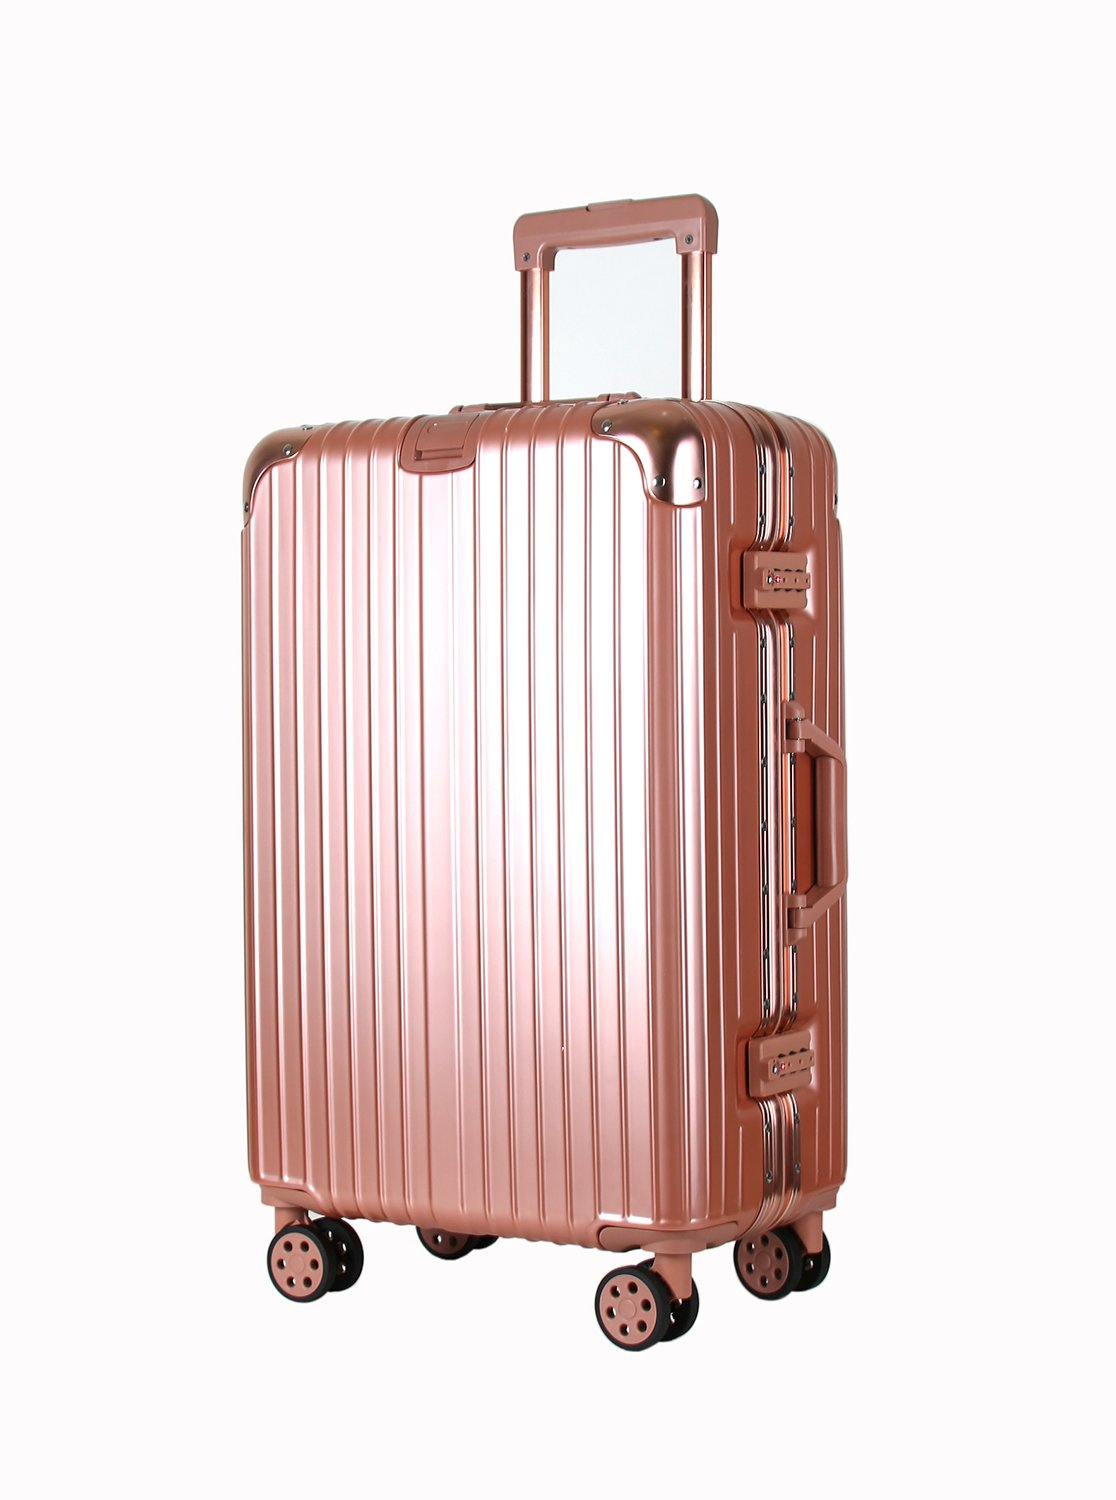 c3a11c13889c Amazon.com | Luggage Carry On Hardseide Waterproof Suitcase ...